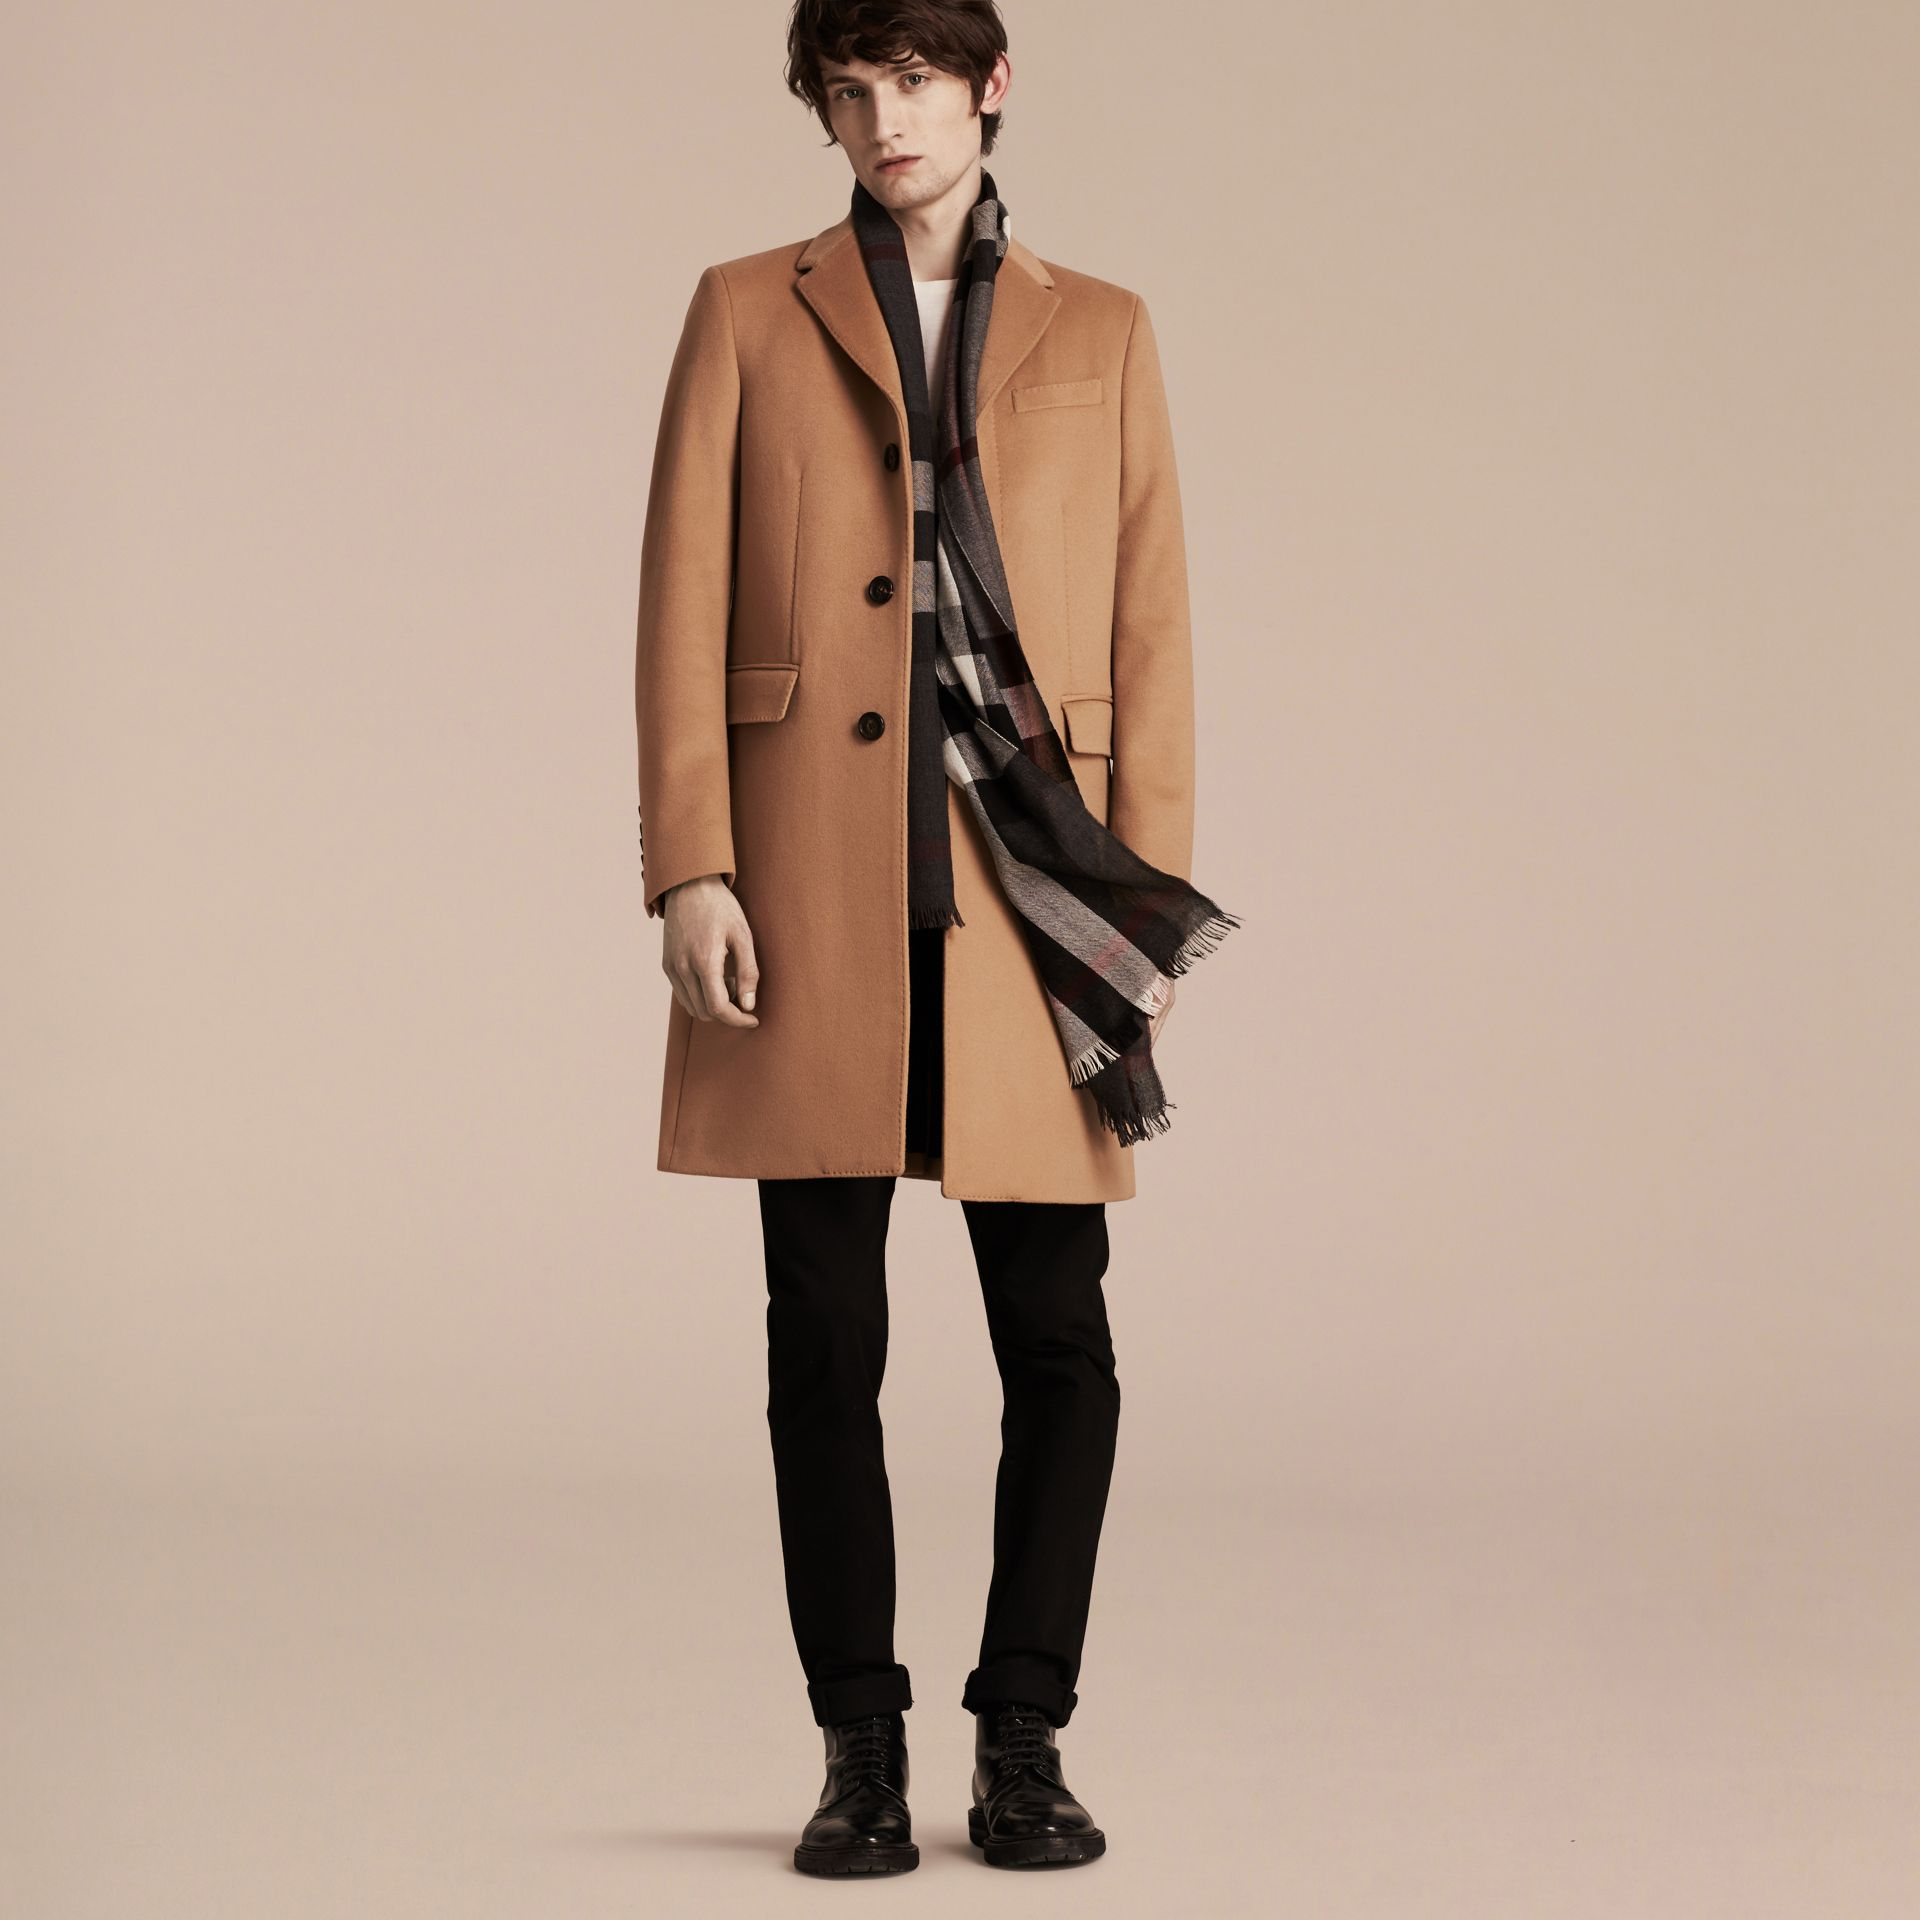 Camel Wool Cashmere Tailored Coat Camel - gallery image 7